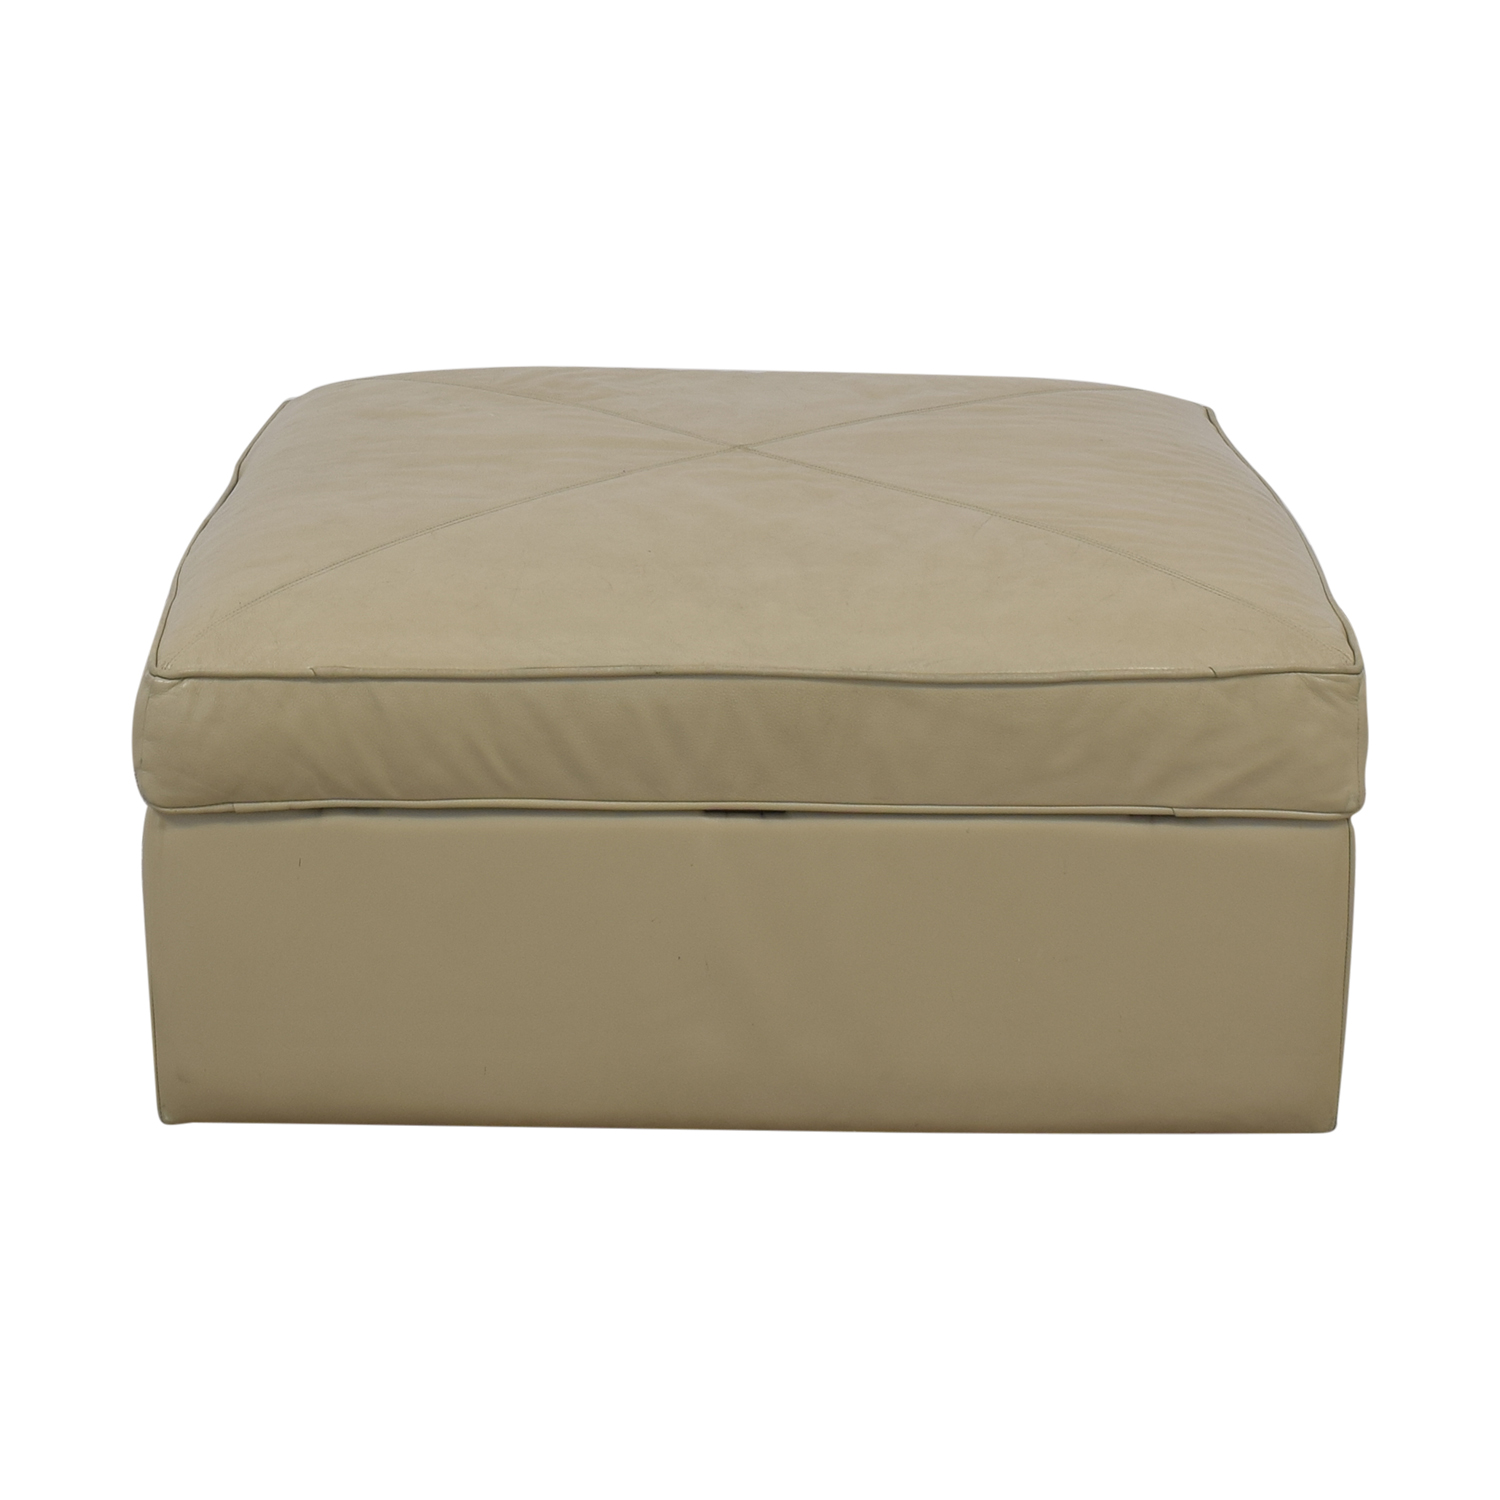 Bassett Furniture Bassett Furniture Square Storage Ottoman Ottomans